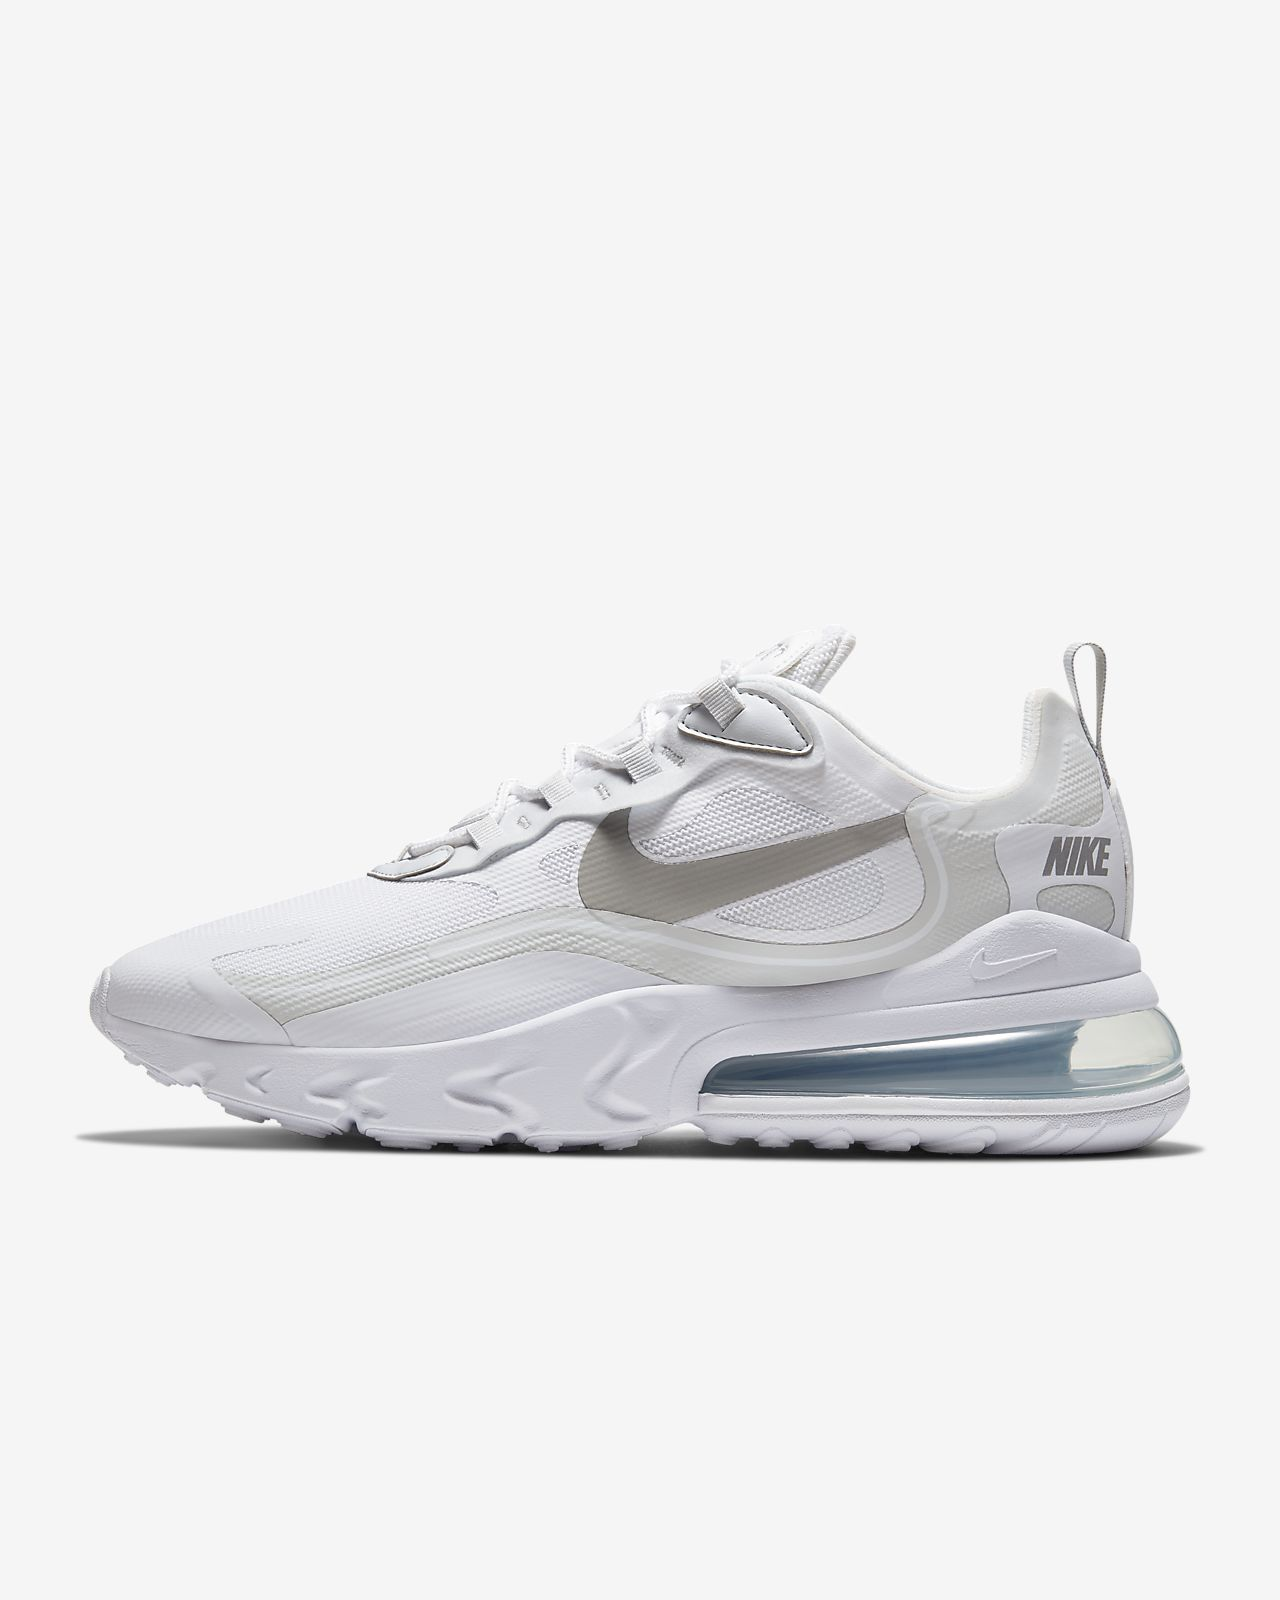 Women's Tiffany Blue Nike Air Max 270 | Life Style Sports